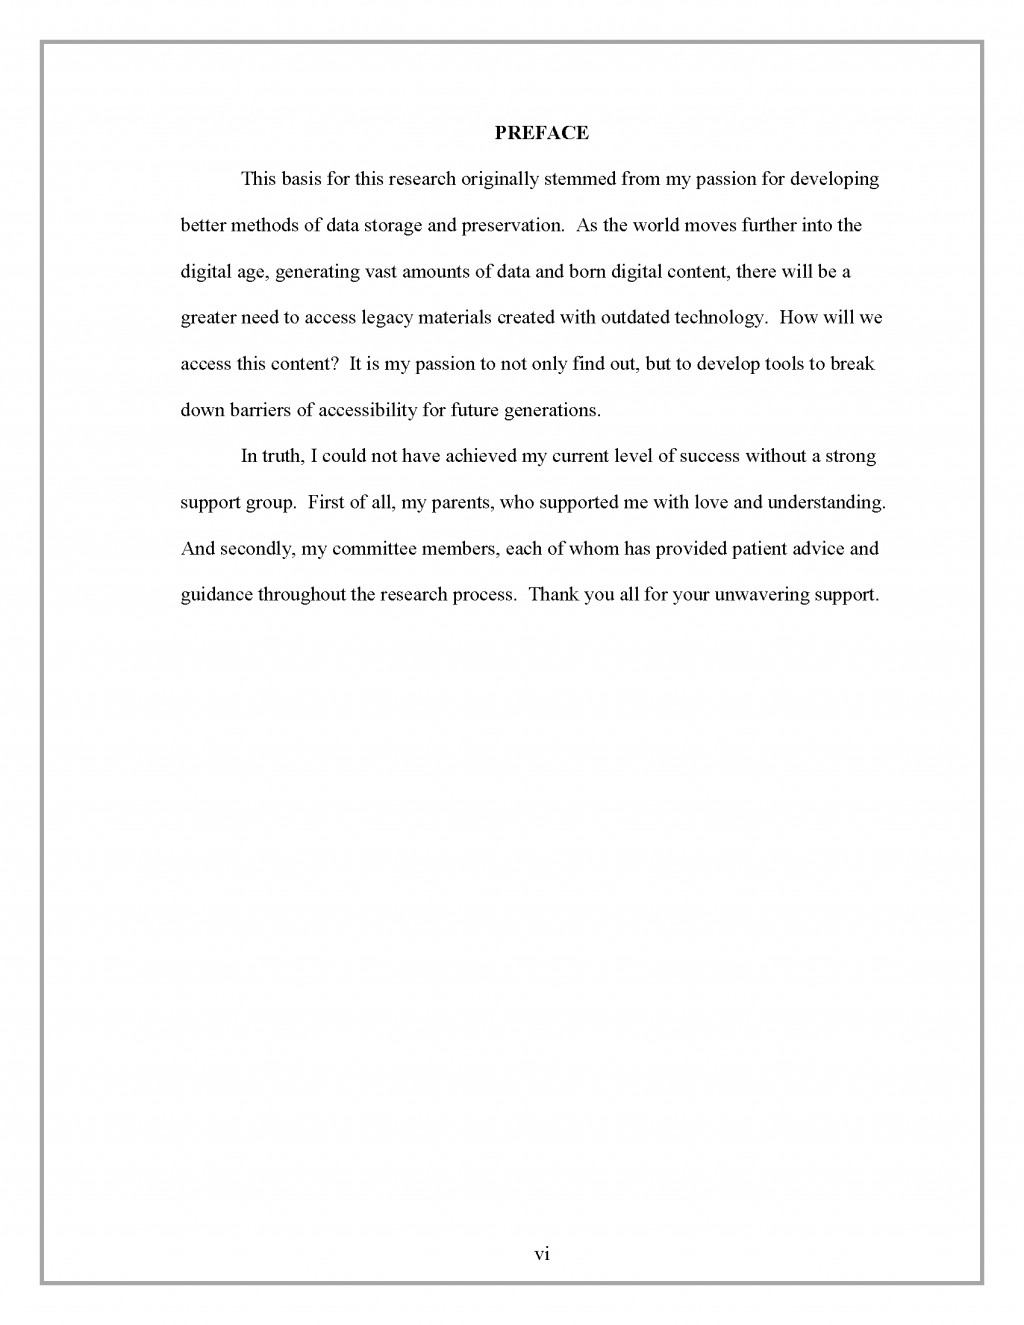 016 Research Paper Preface Border Best Topics In Computer Frightening Science Top 10 Large